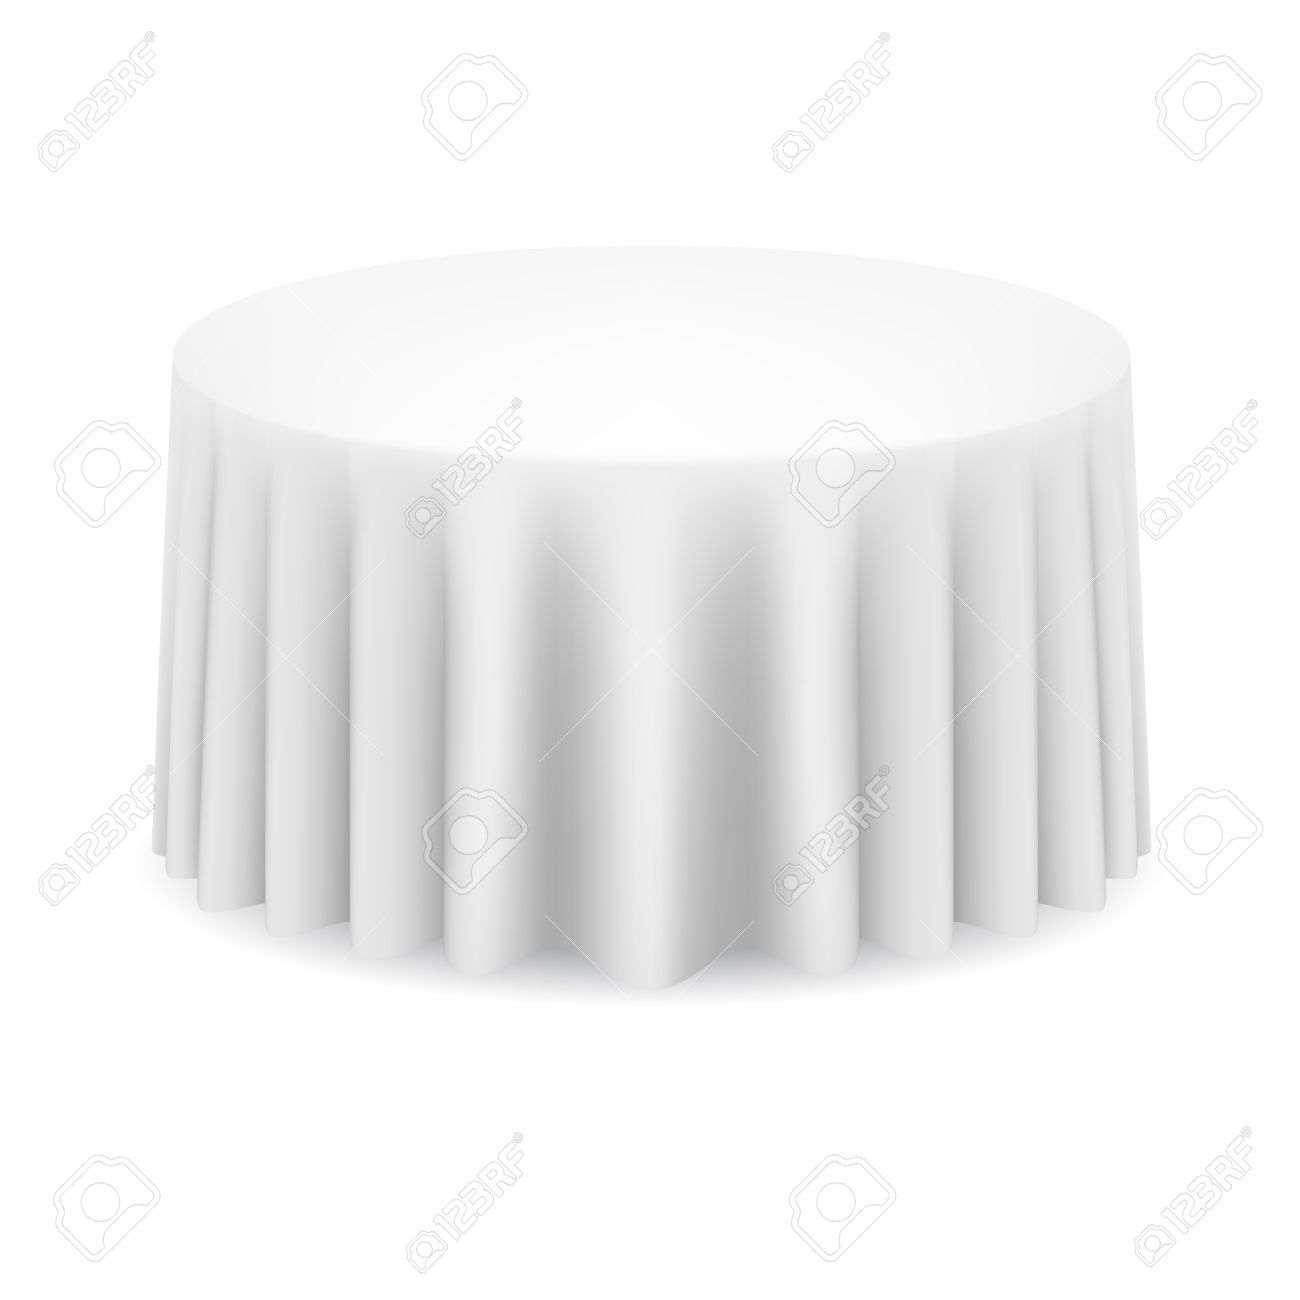 Table With Cloth. Displaying 15 Images For White Cloth Table Top.